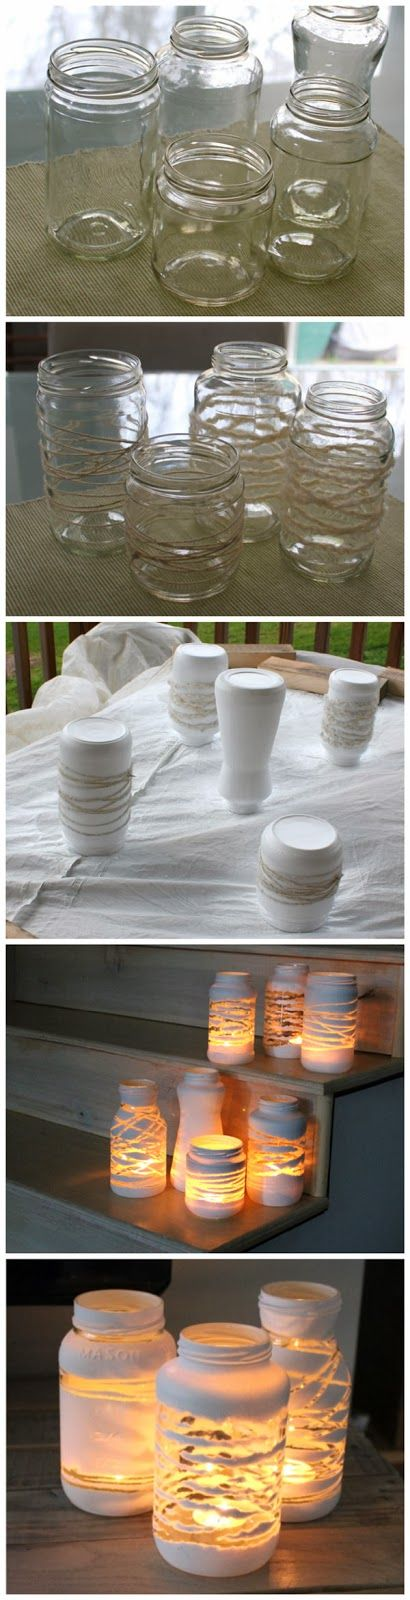 réutiliser les pots de grand mère comme objet de decoration original - DIY - yarn wrapped painted jars